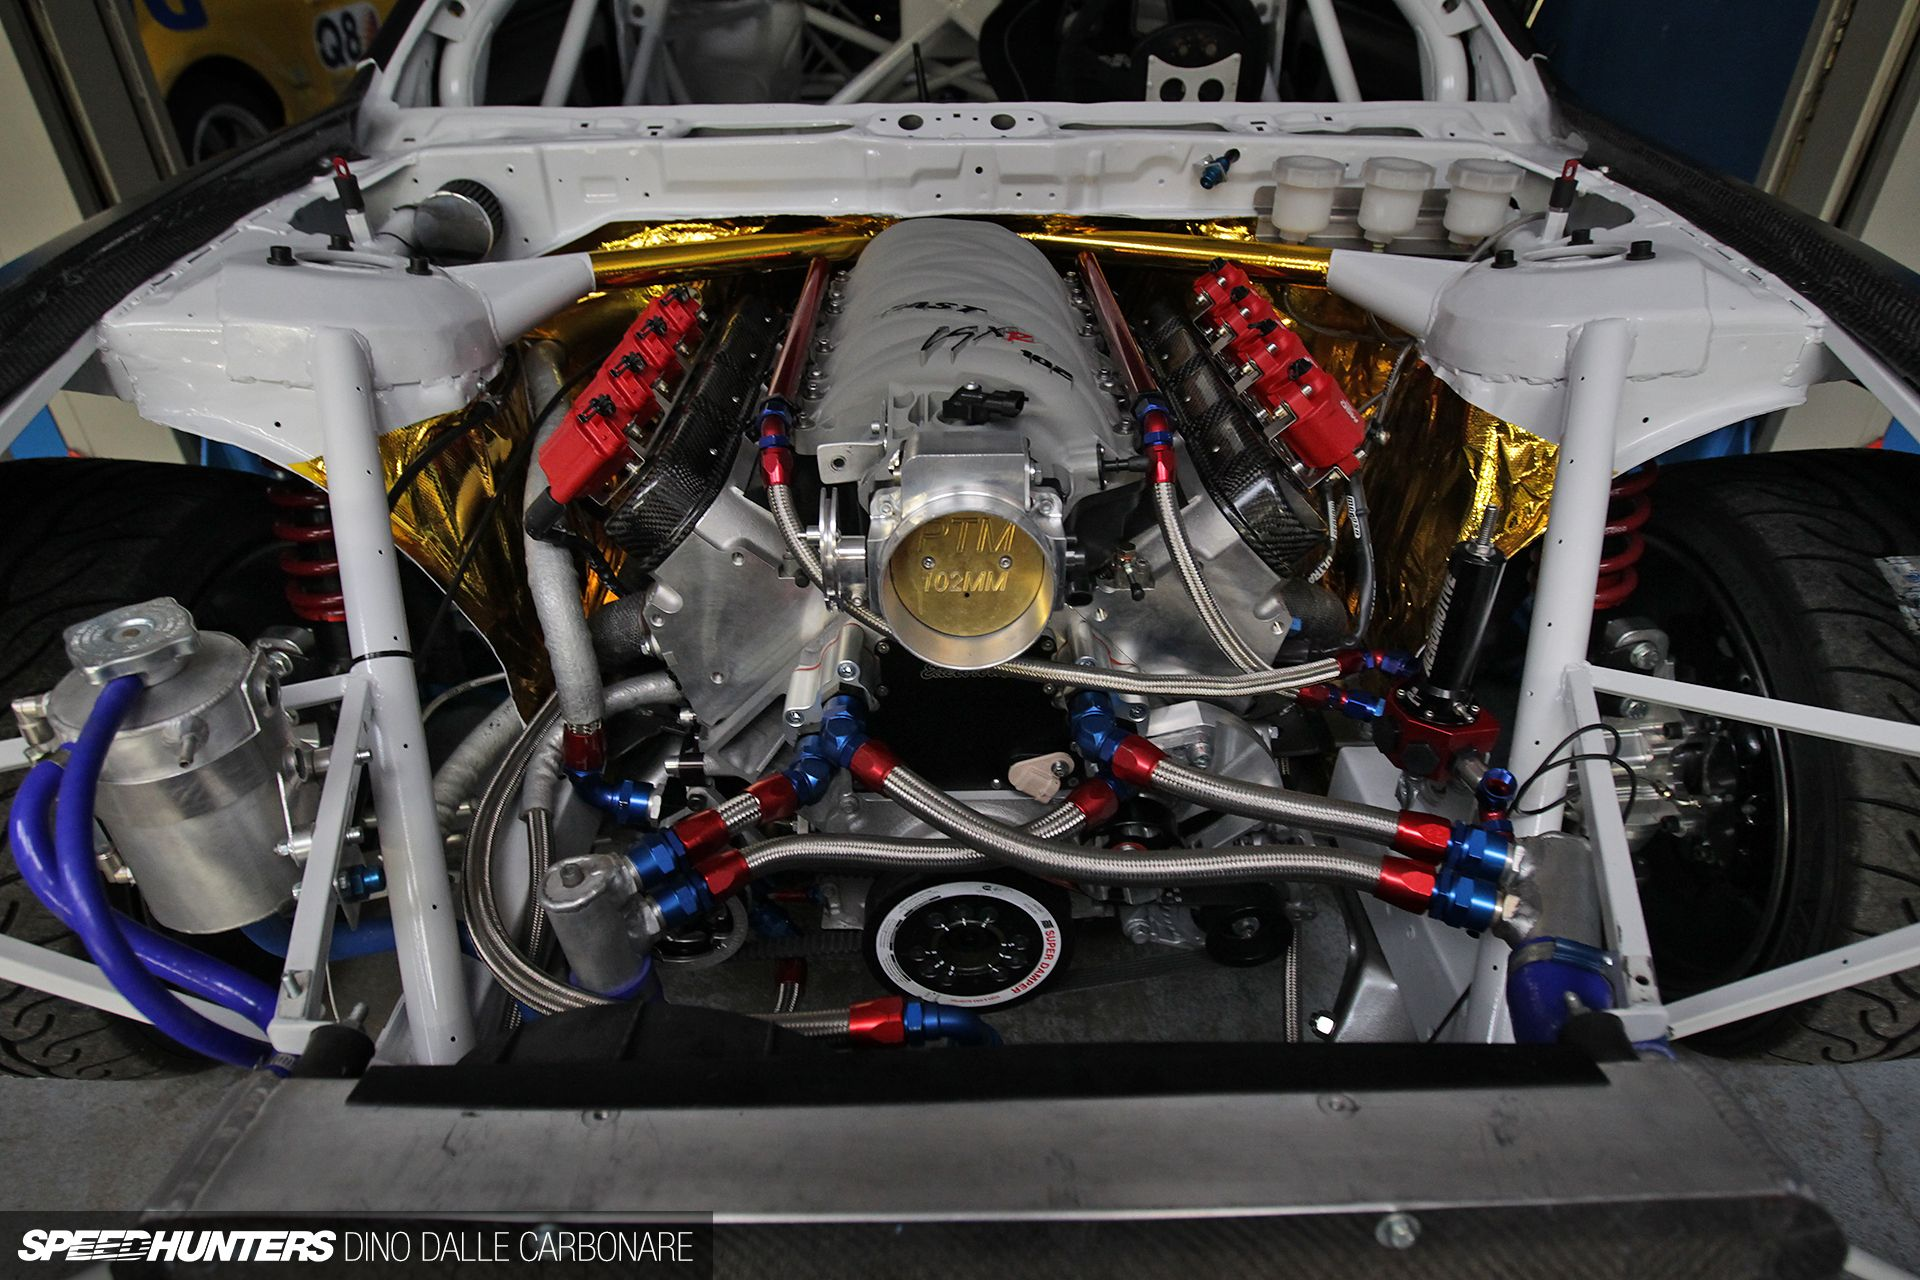 S13 Engine Bay Wiring Pinout Brill Steel S14 V8 15 0 Engines Pure Power